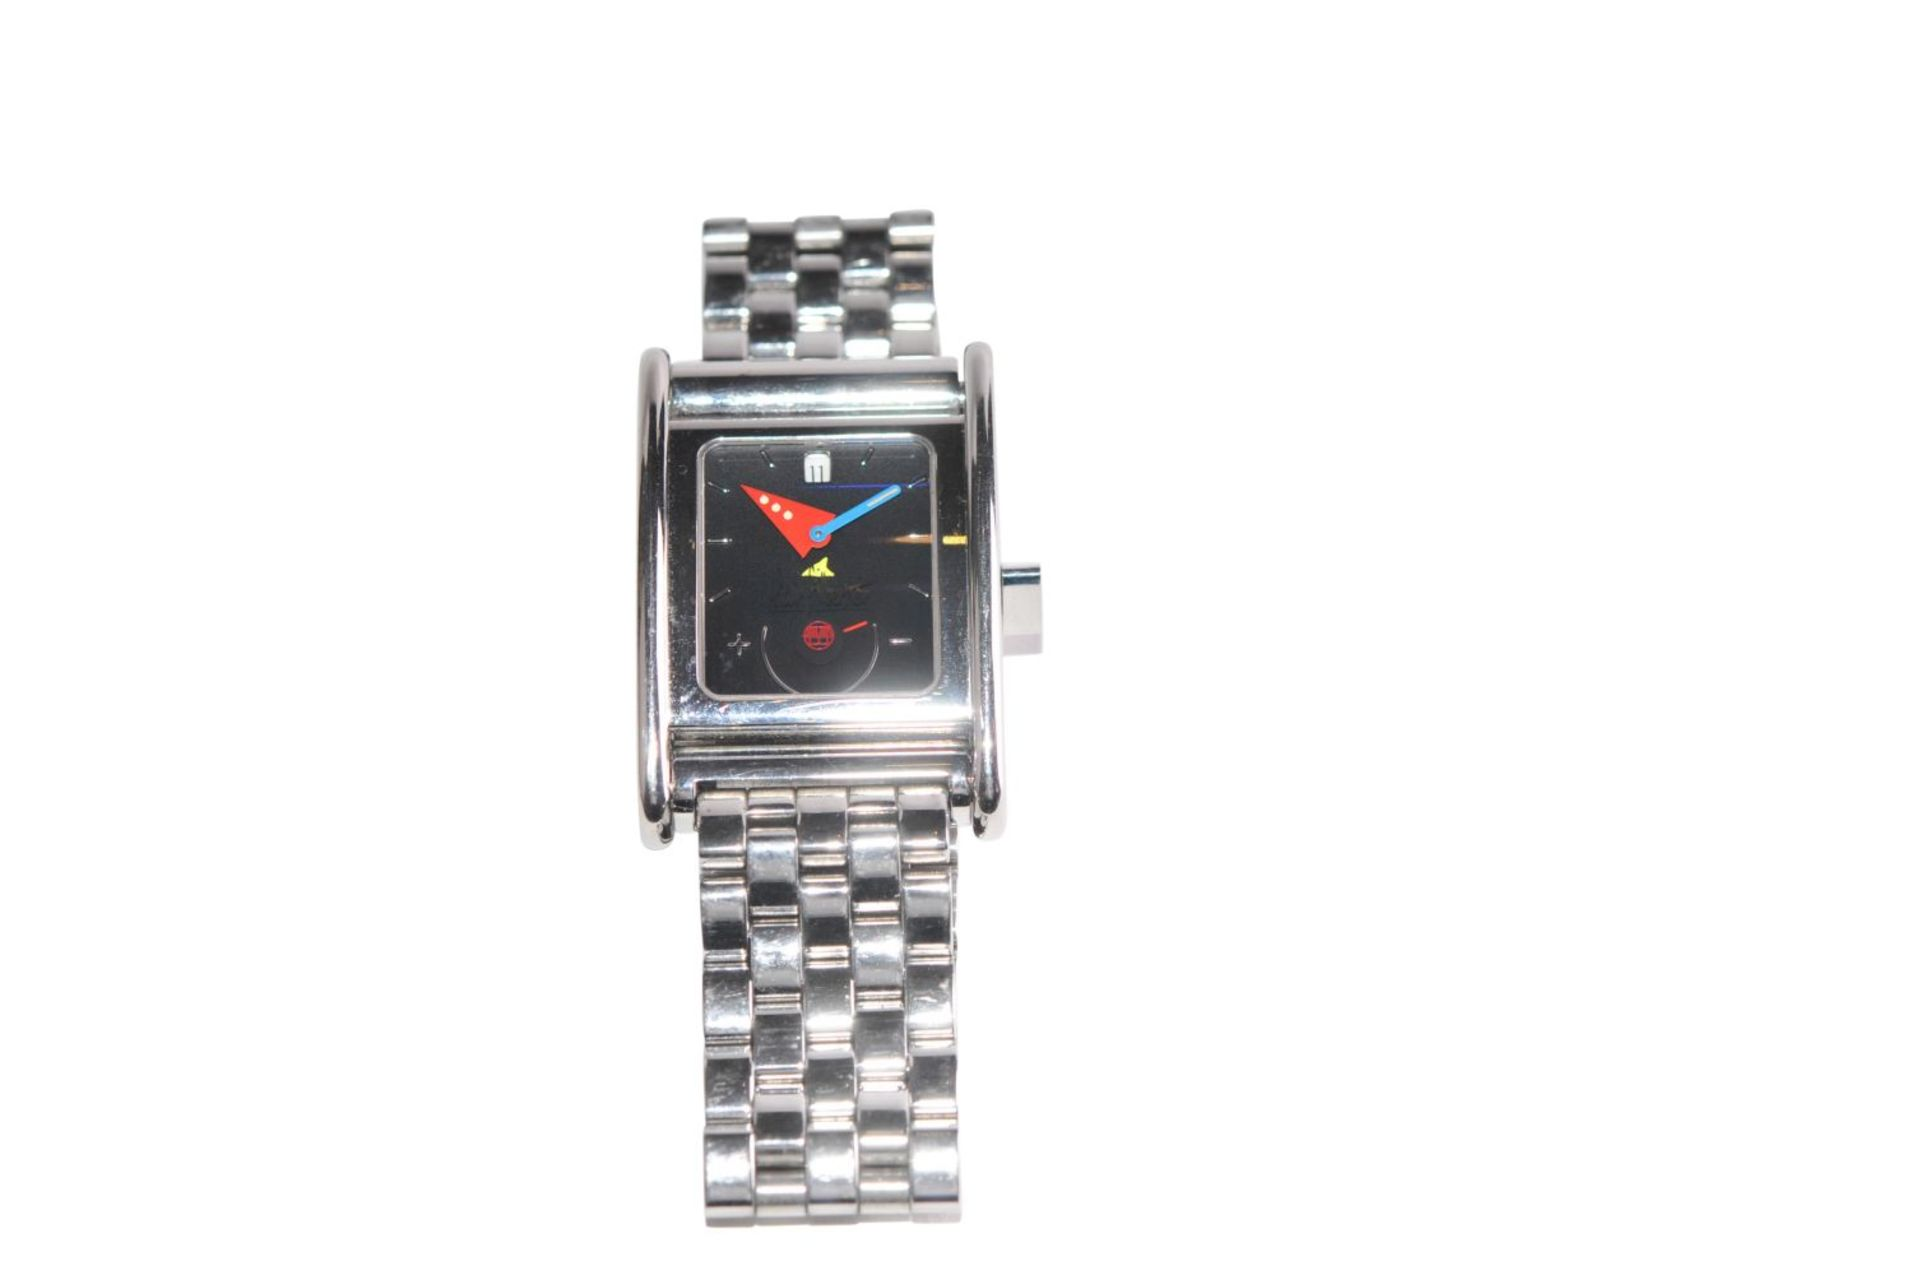 Los 47 - ALAIN SILBERSTEIN Boido45 x 32 mm steel watch limited to 500 pieces, automatic with power reserve